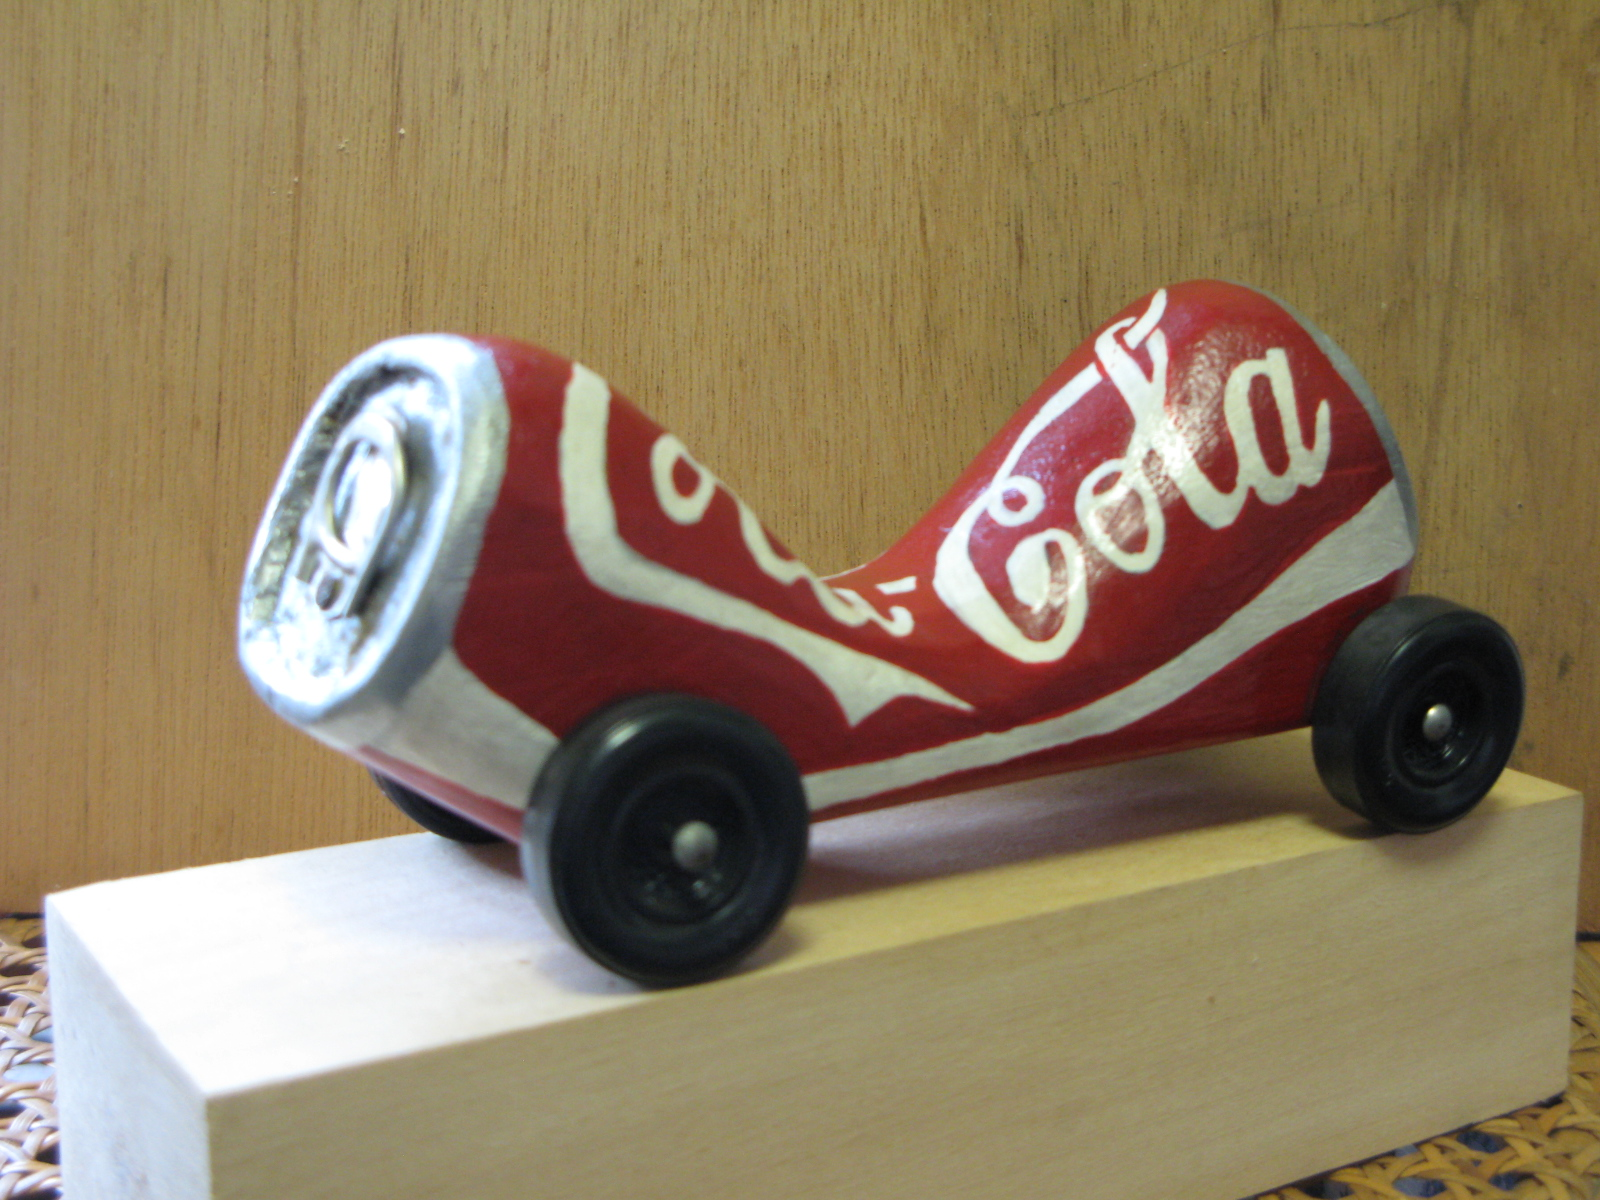 A Whittle Scouting: Pinewood Derby - Open competition